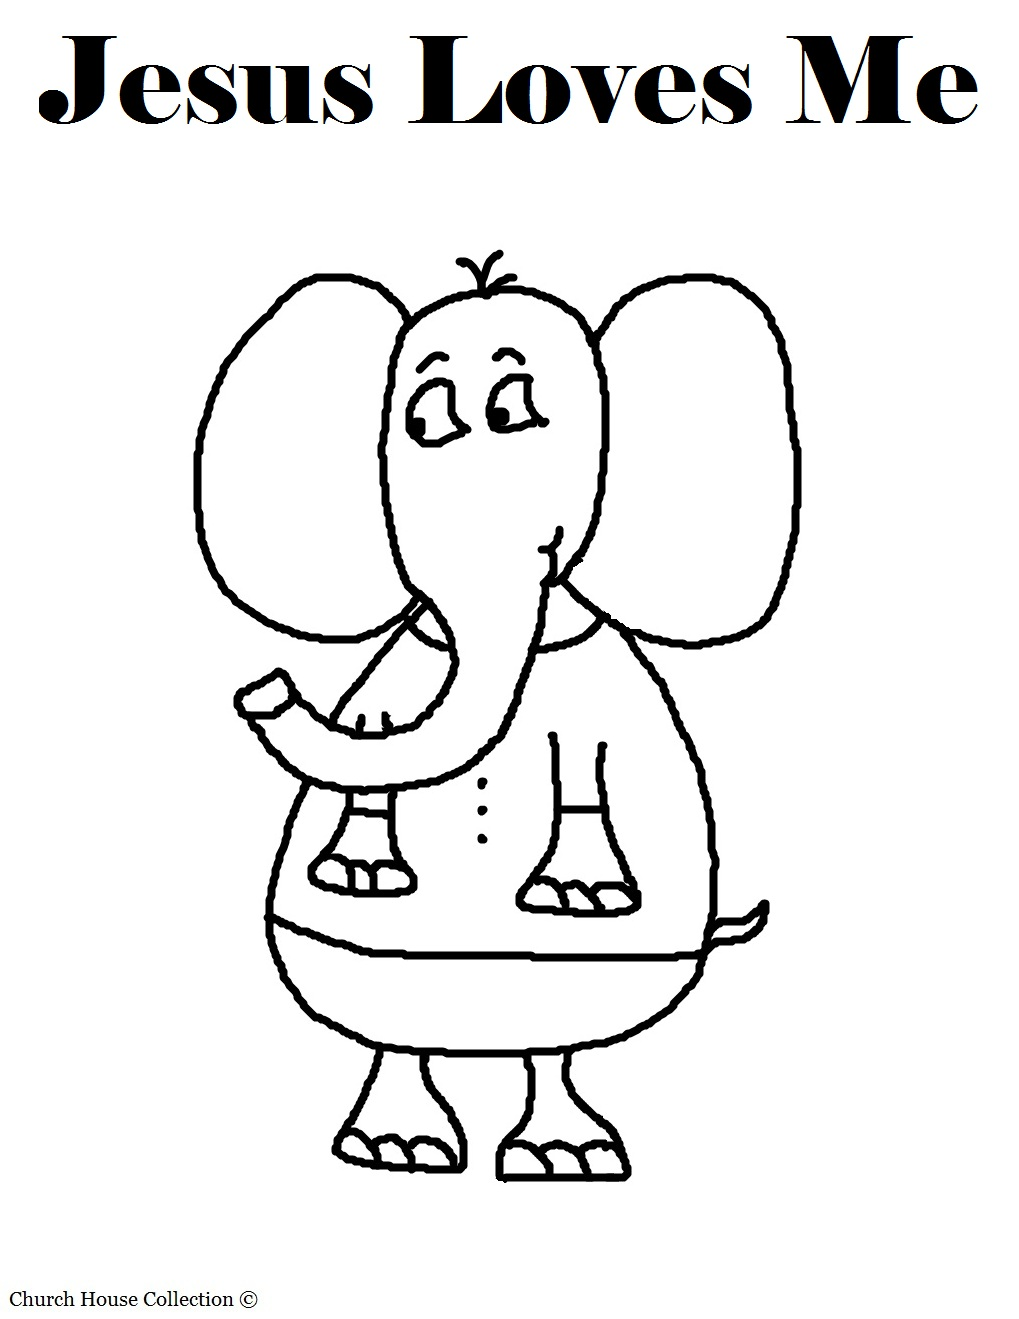 jesus loves me elephant coloring page with words